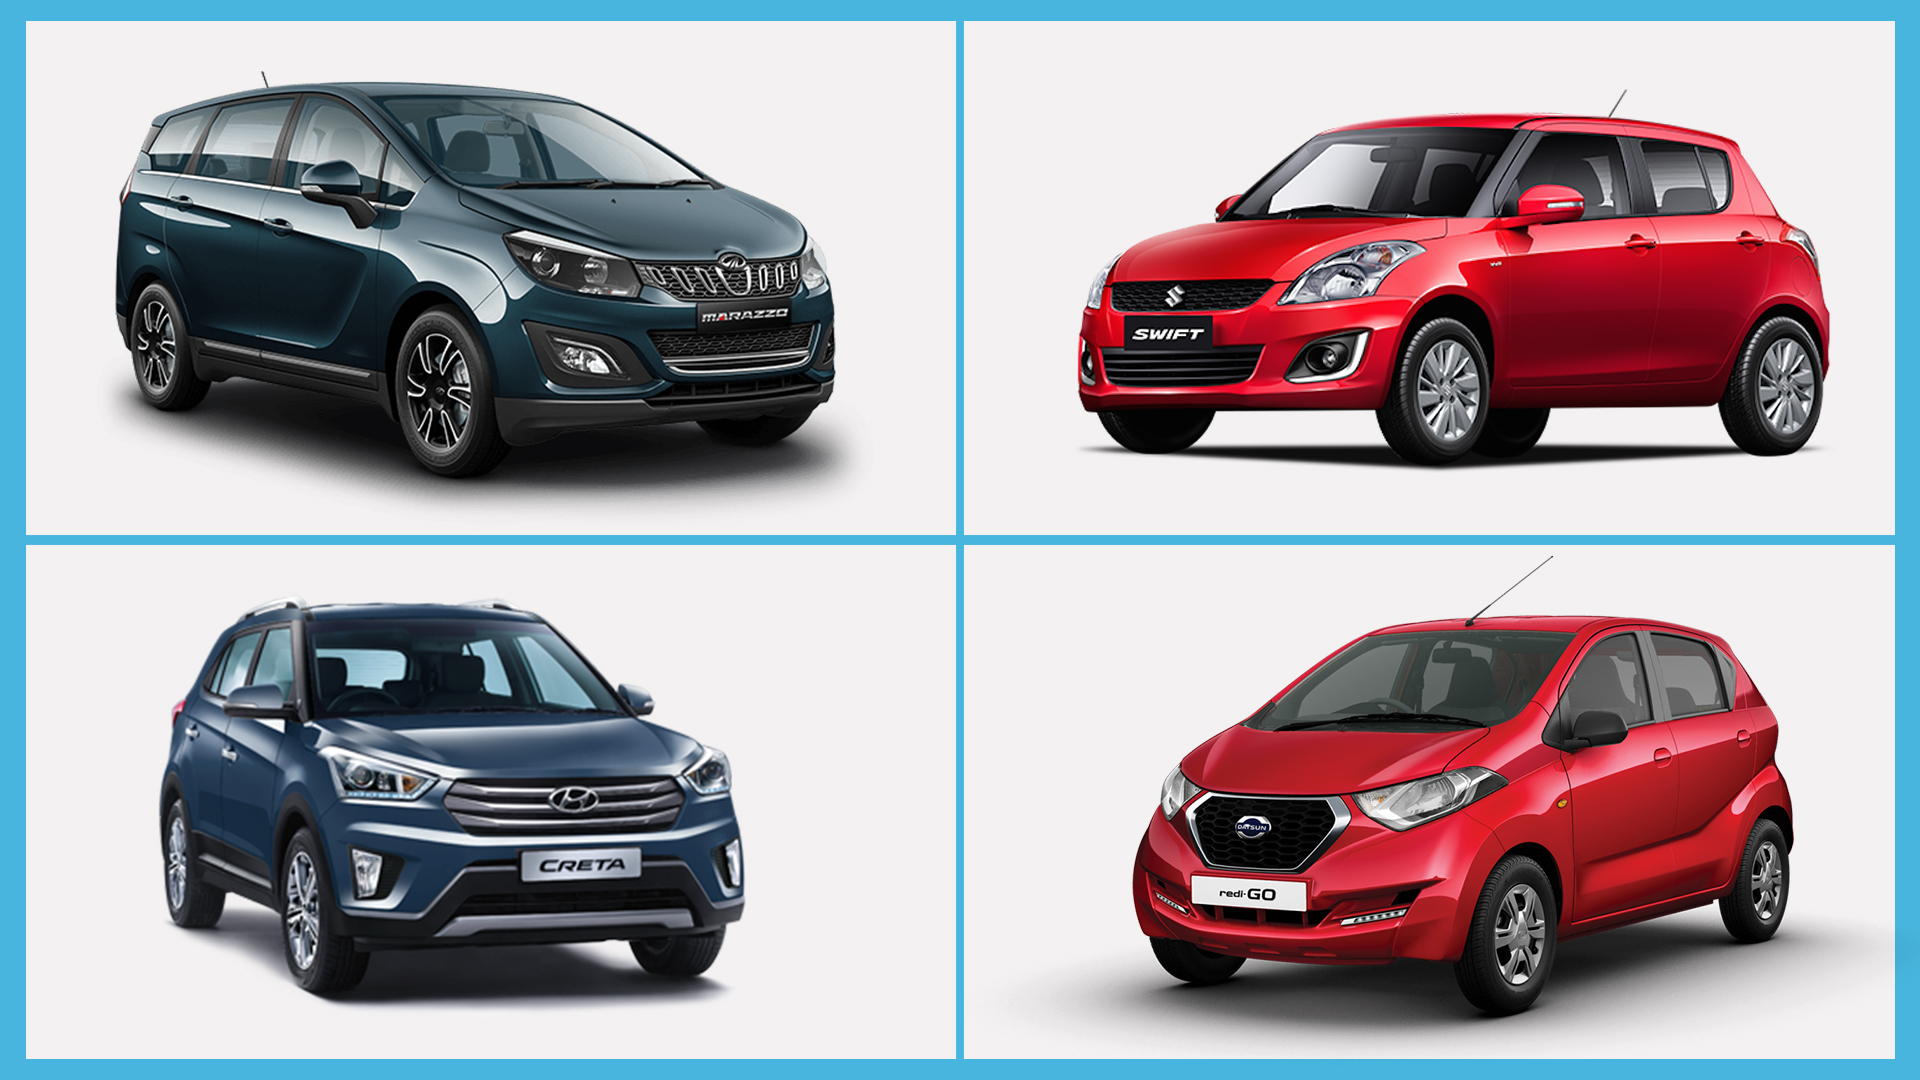 Know how Mynewcar helps you find the Best Car Deals in a Minute